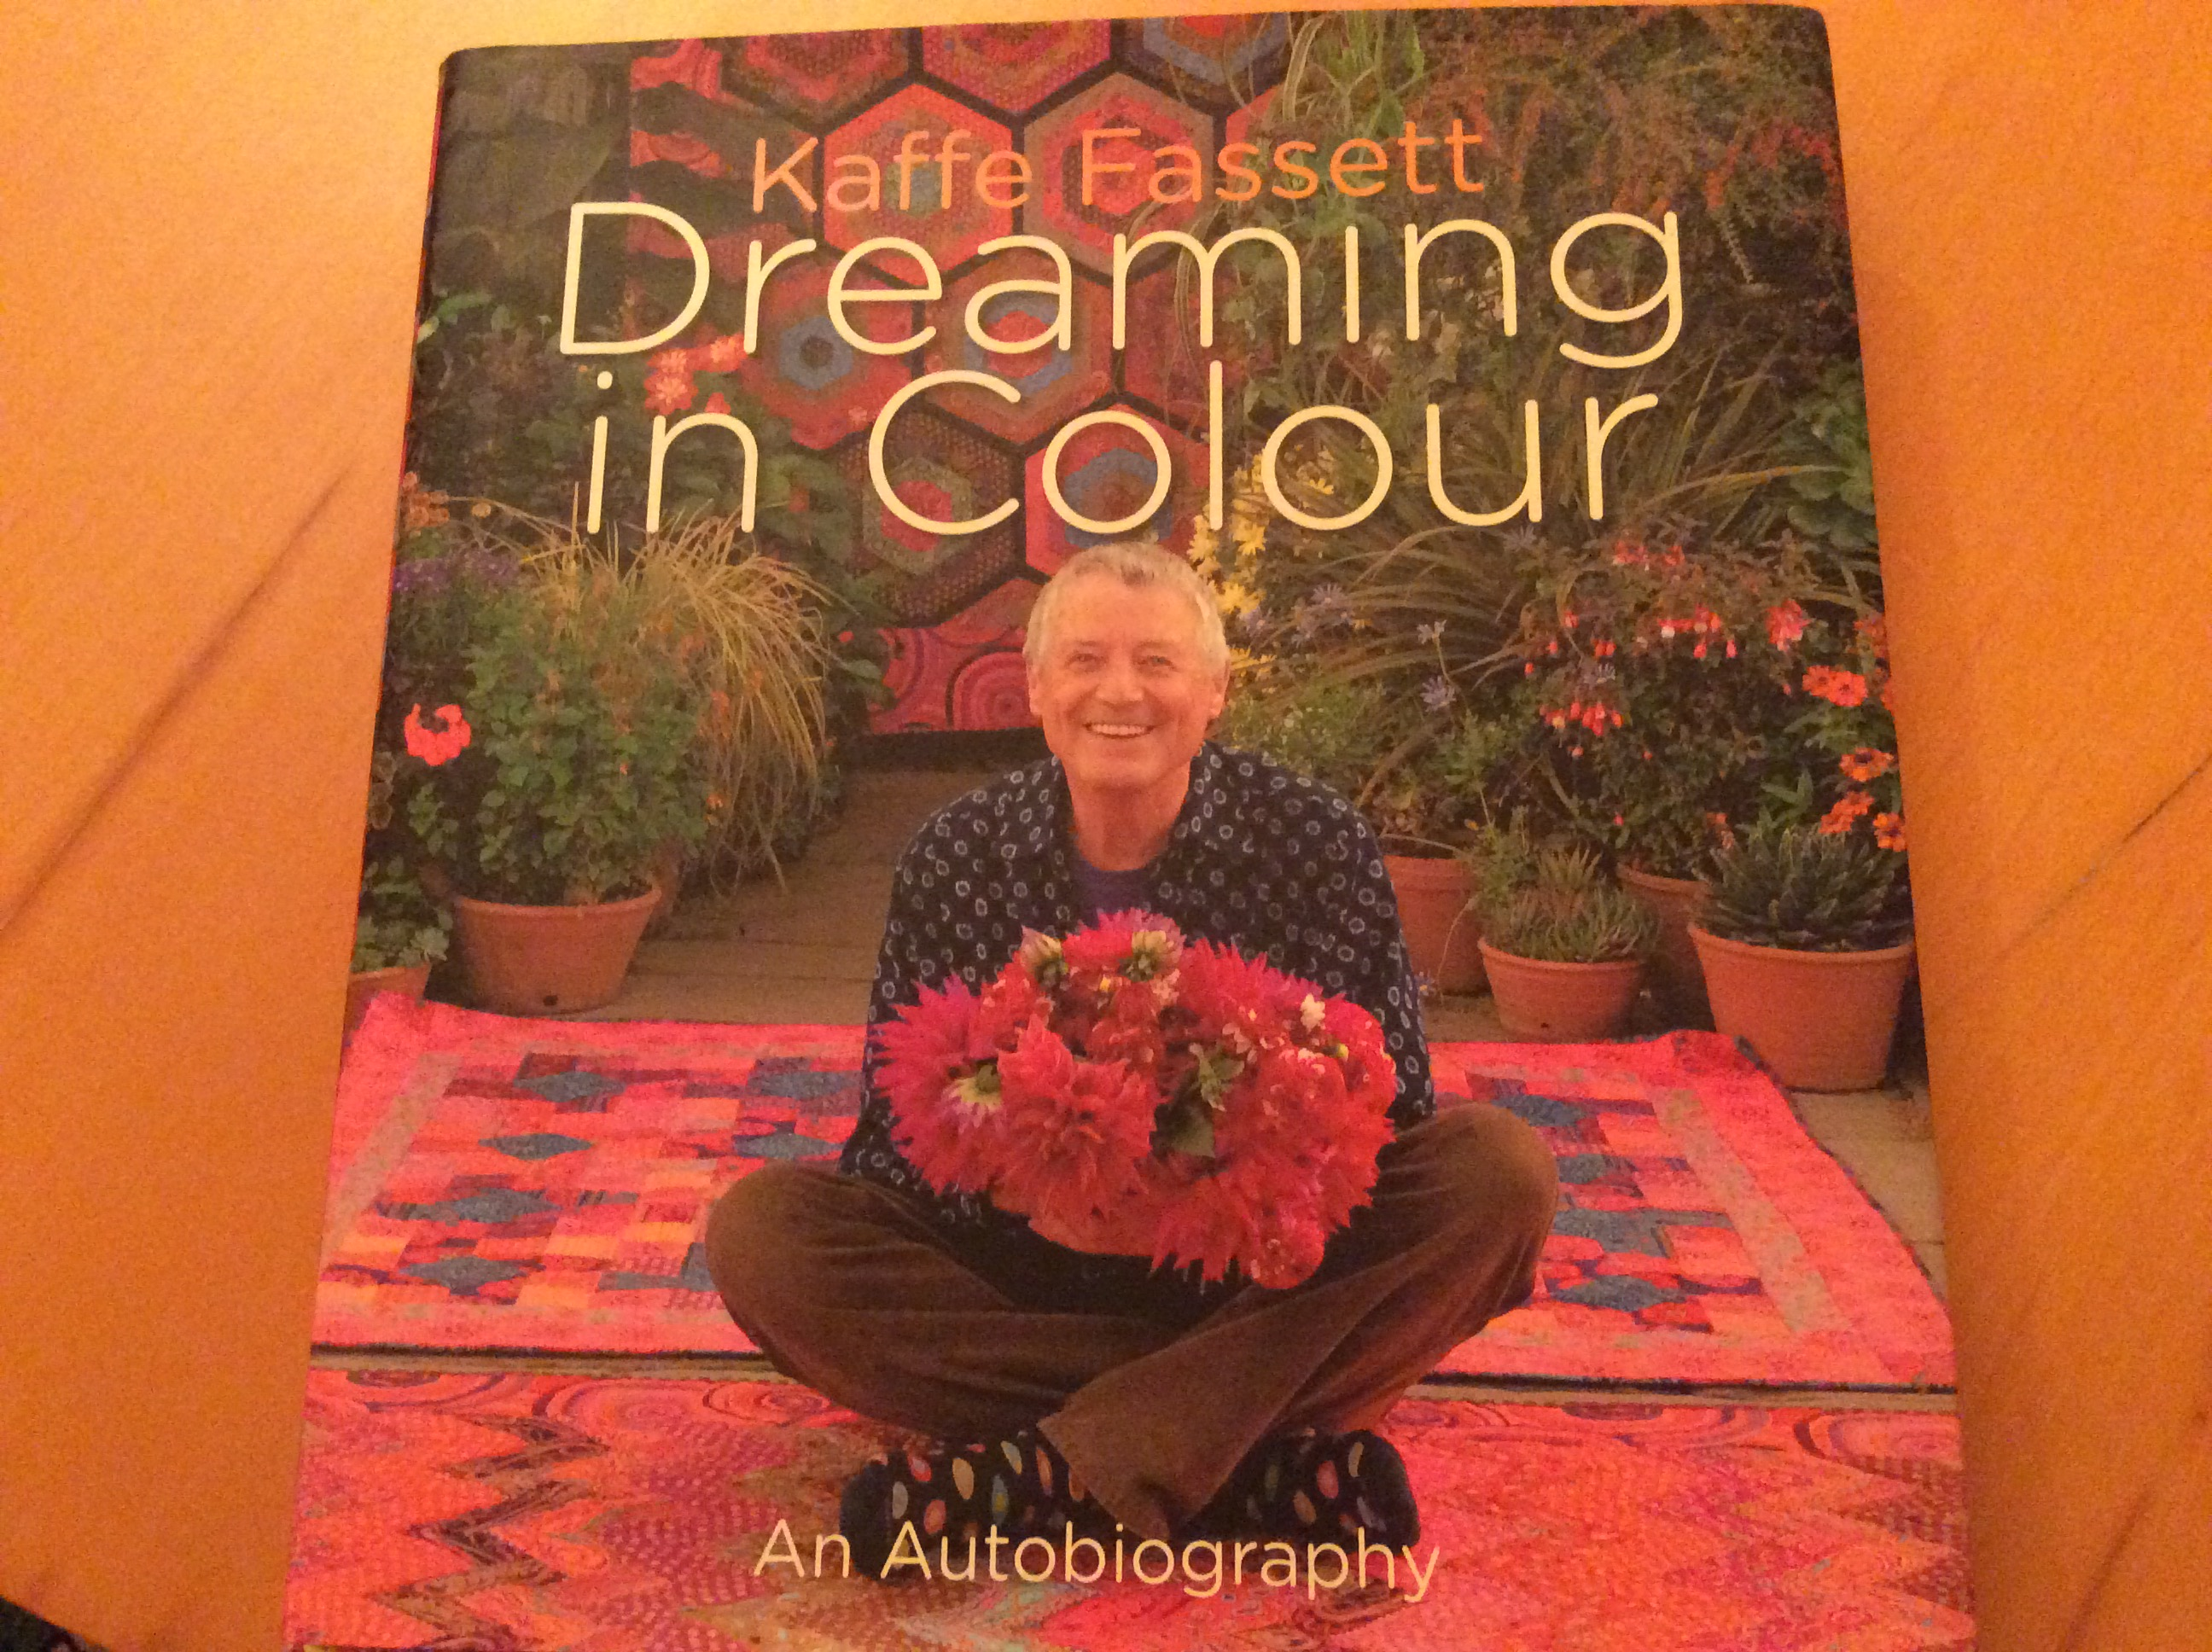 Kaffe Fasset's Dreaming in Colour